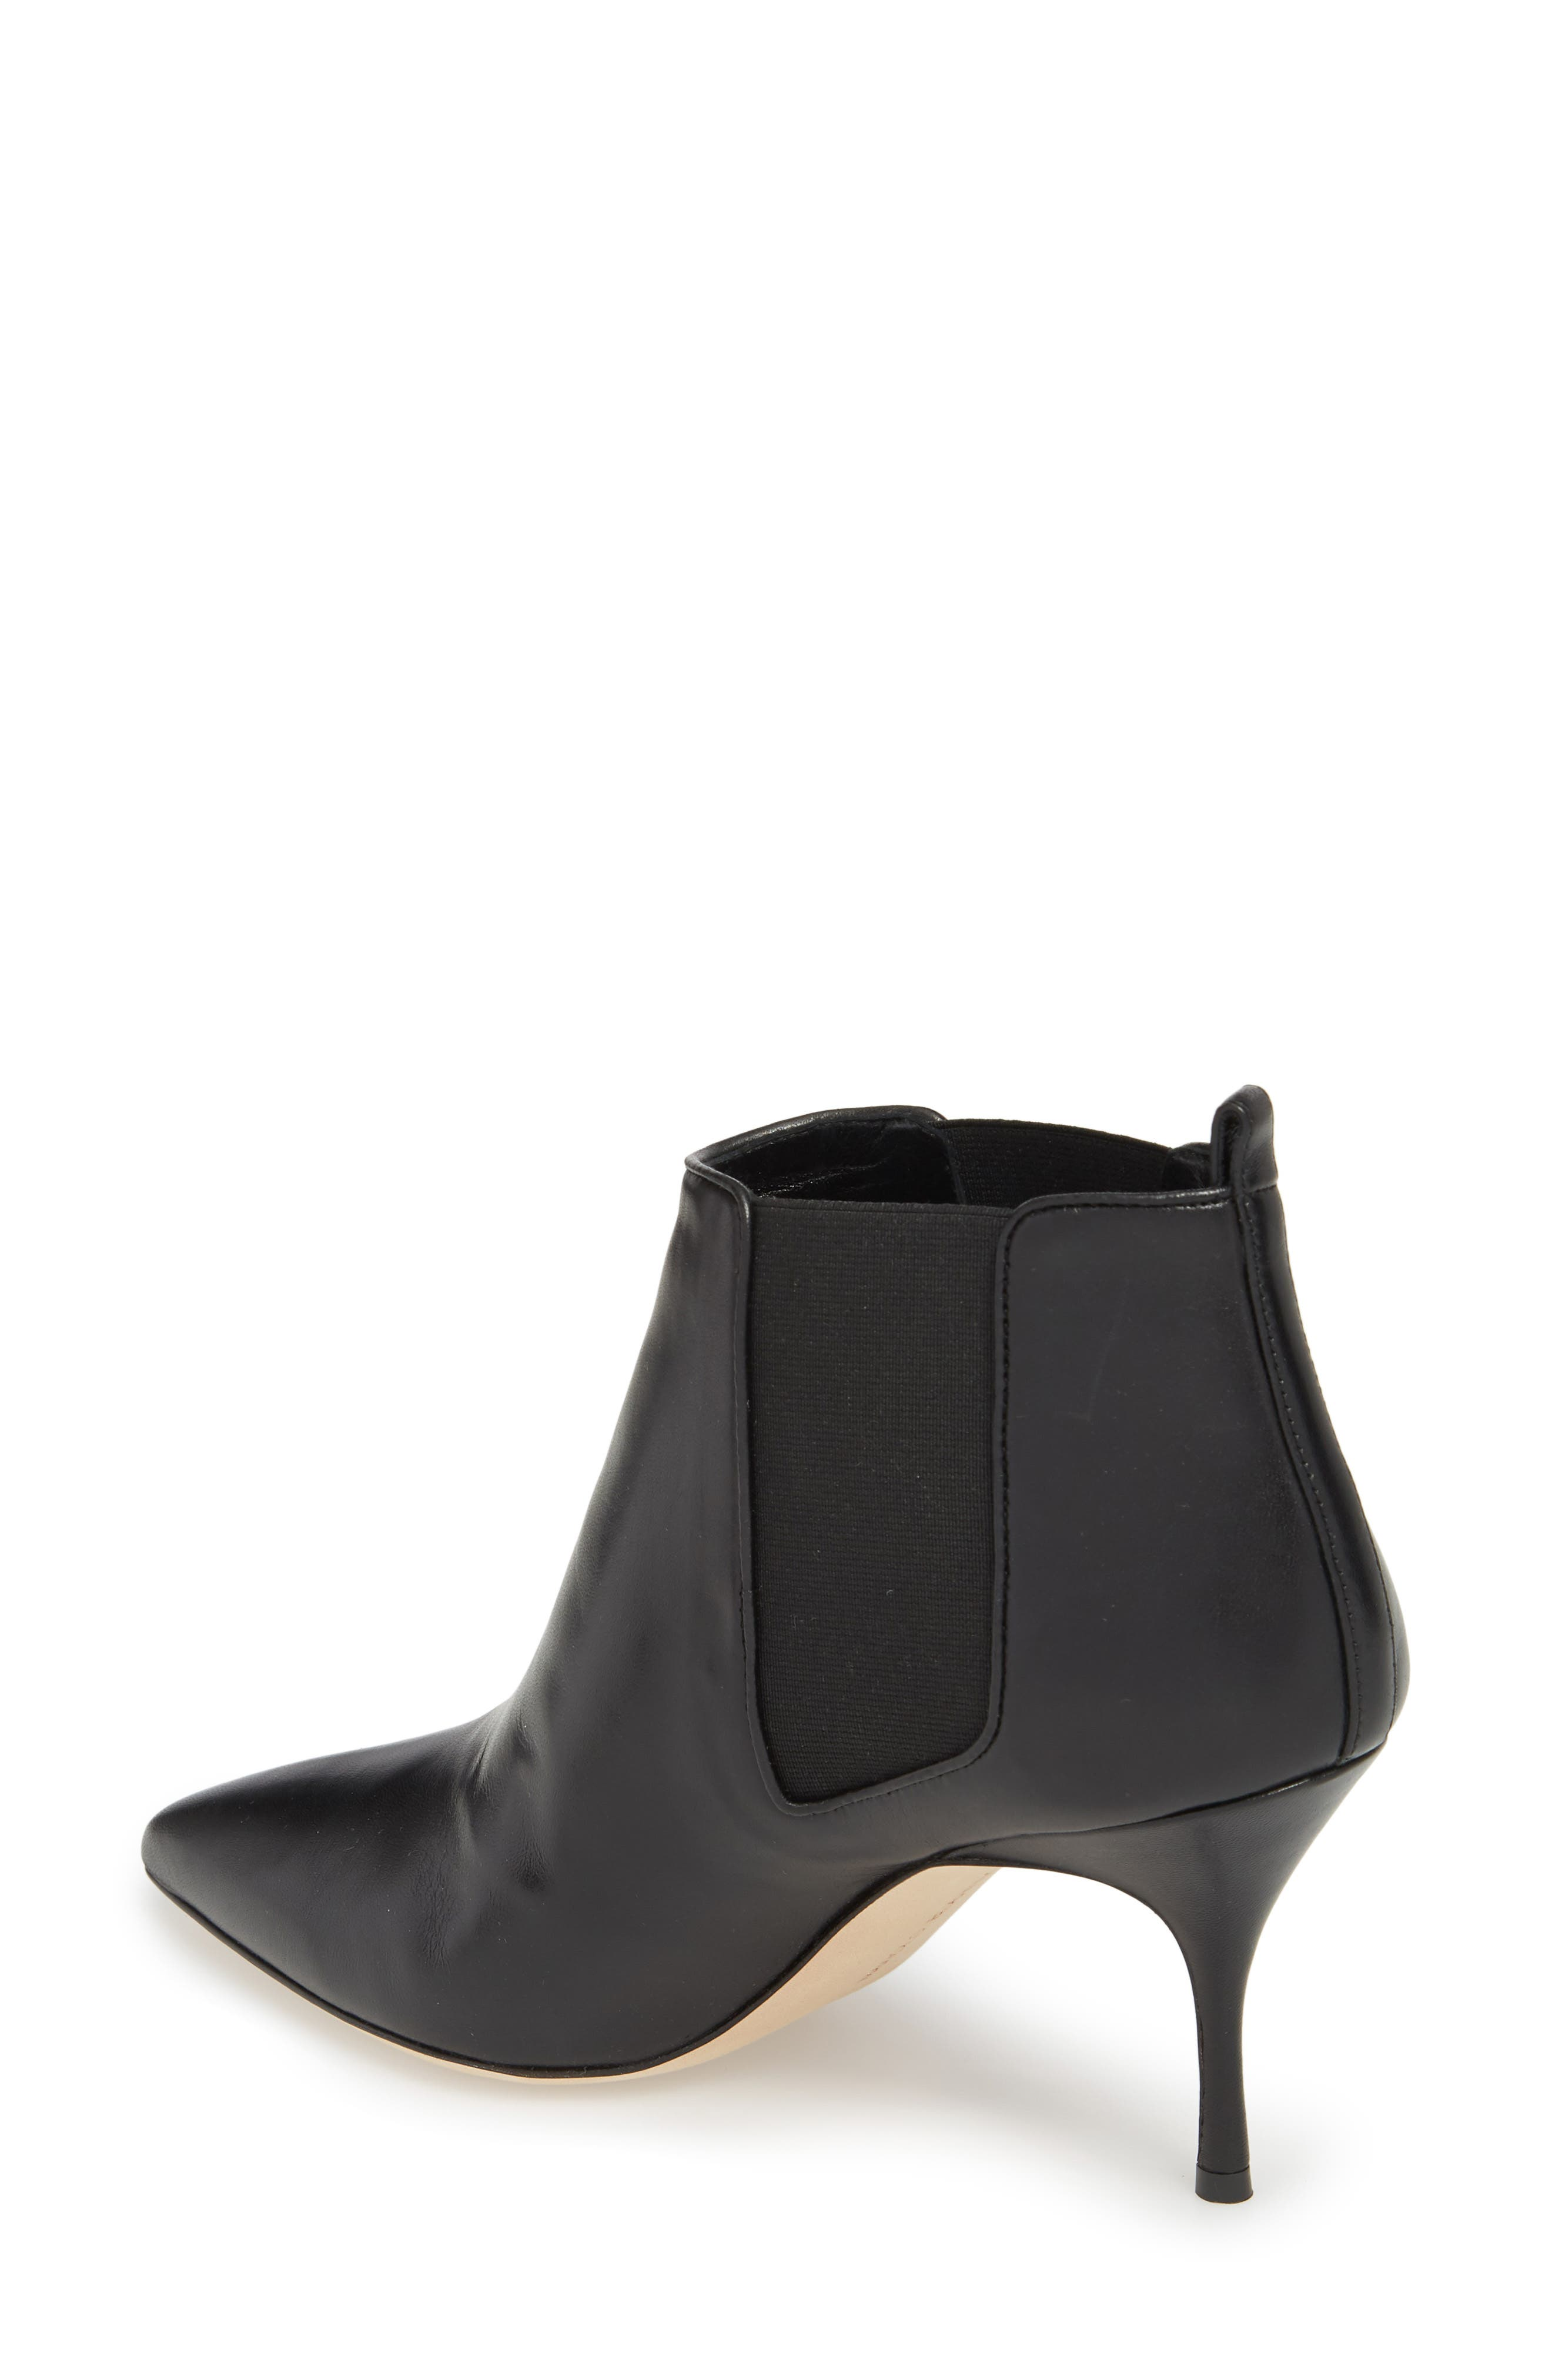 Dildi Pointy Toe Bootie,                             Alternate thumbnail 2, color,                             BLACK LEATHER